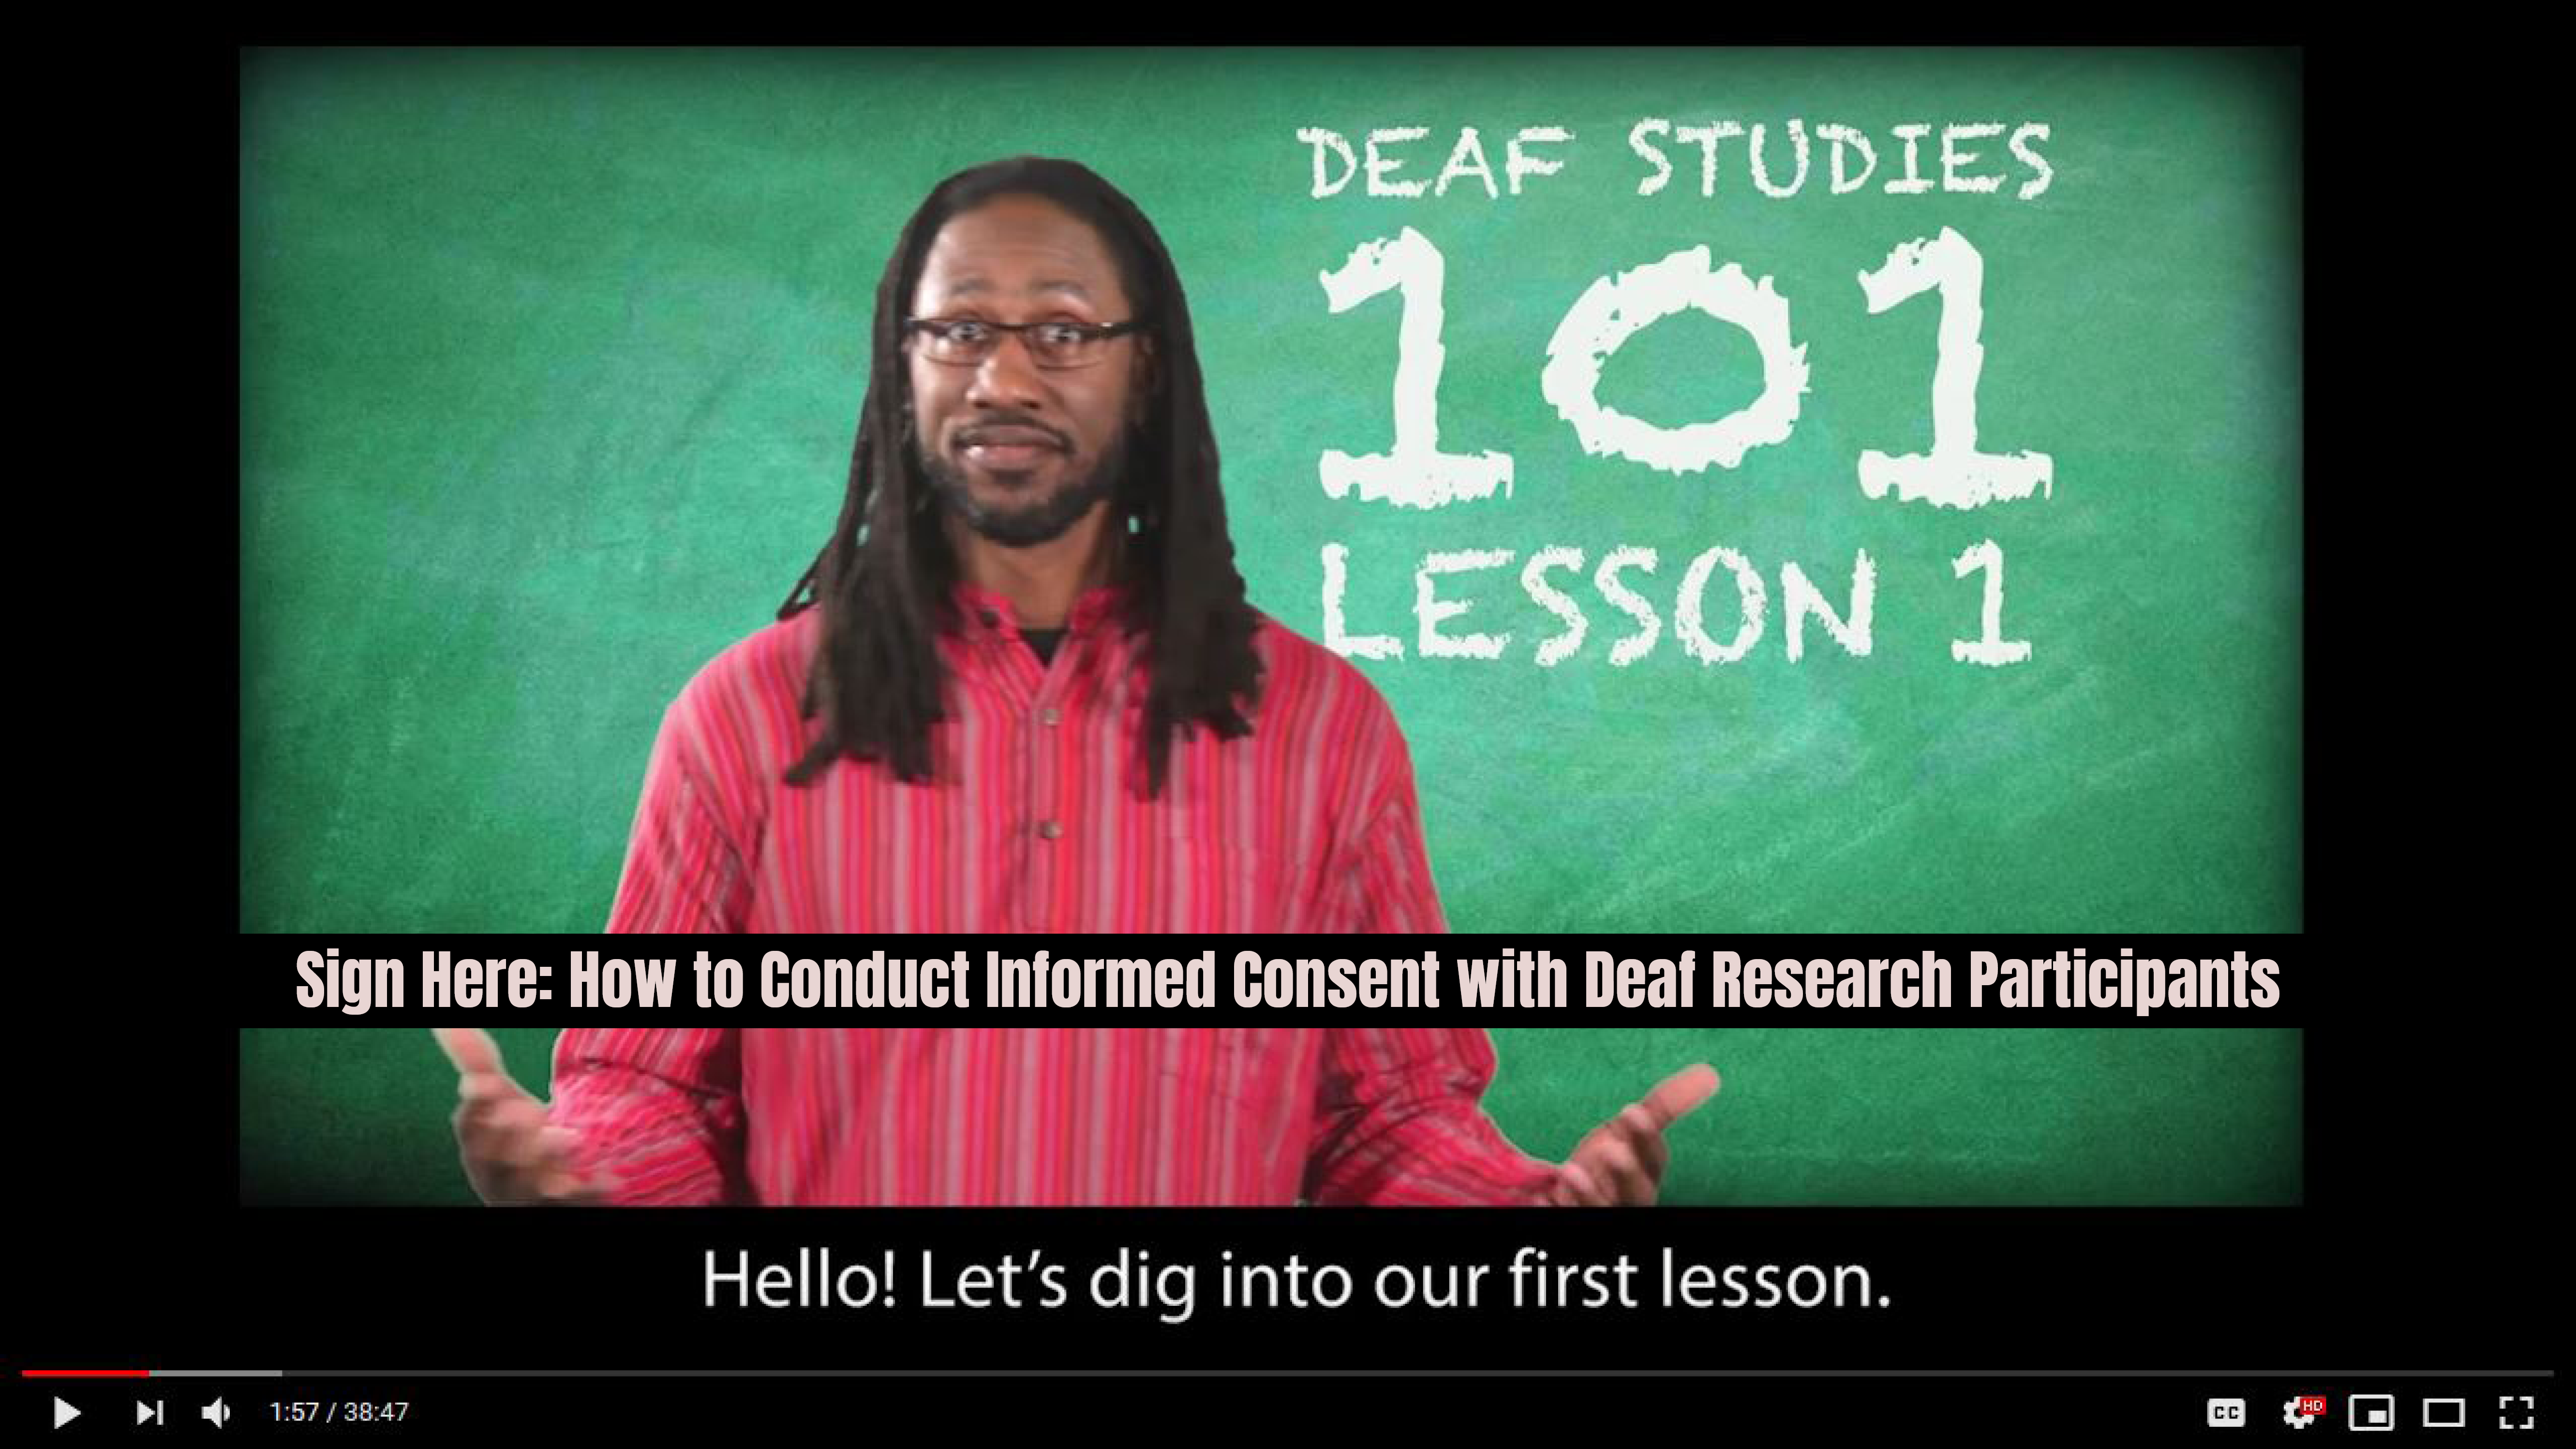 Sign Here: How to Conduct Informed Consent with Deaf Research Participants